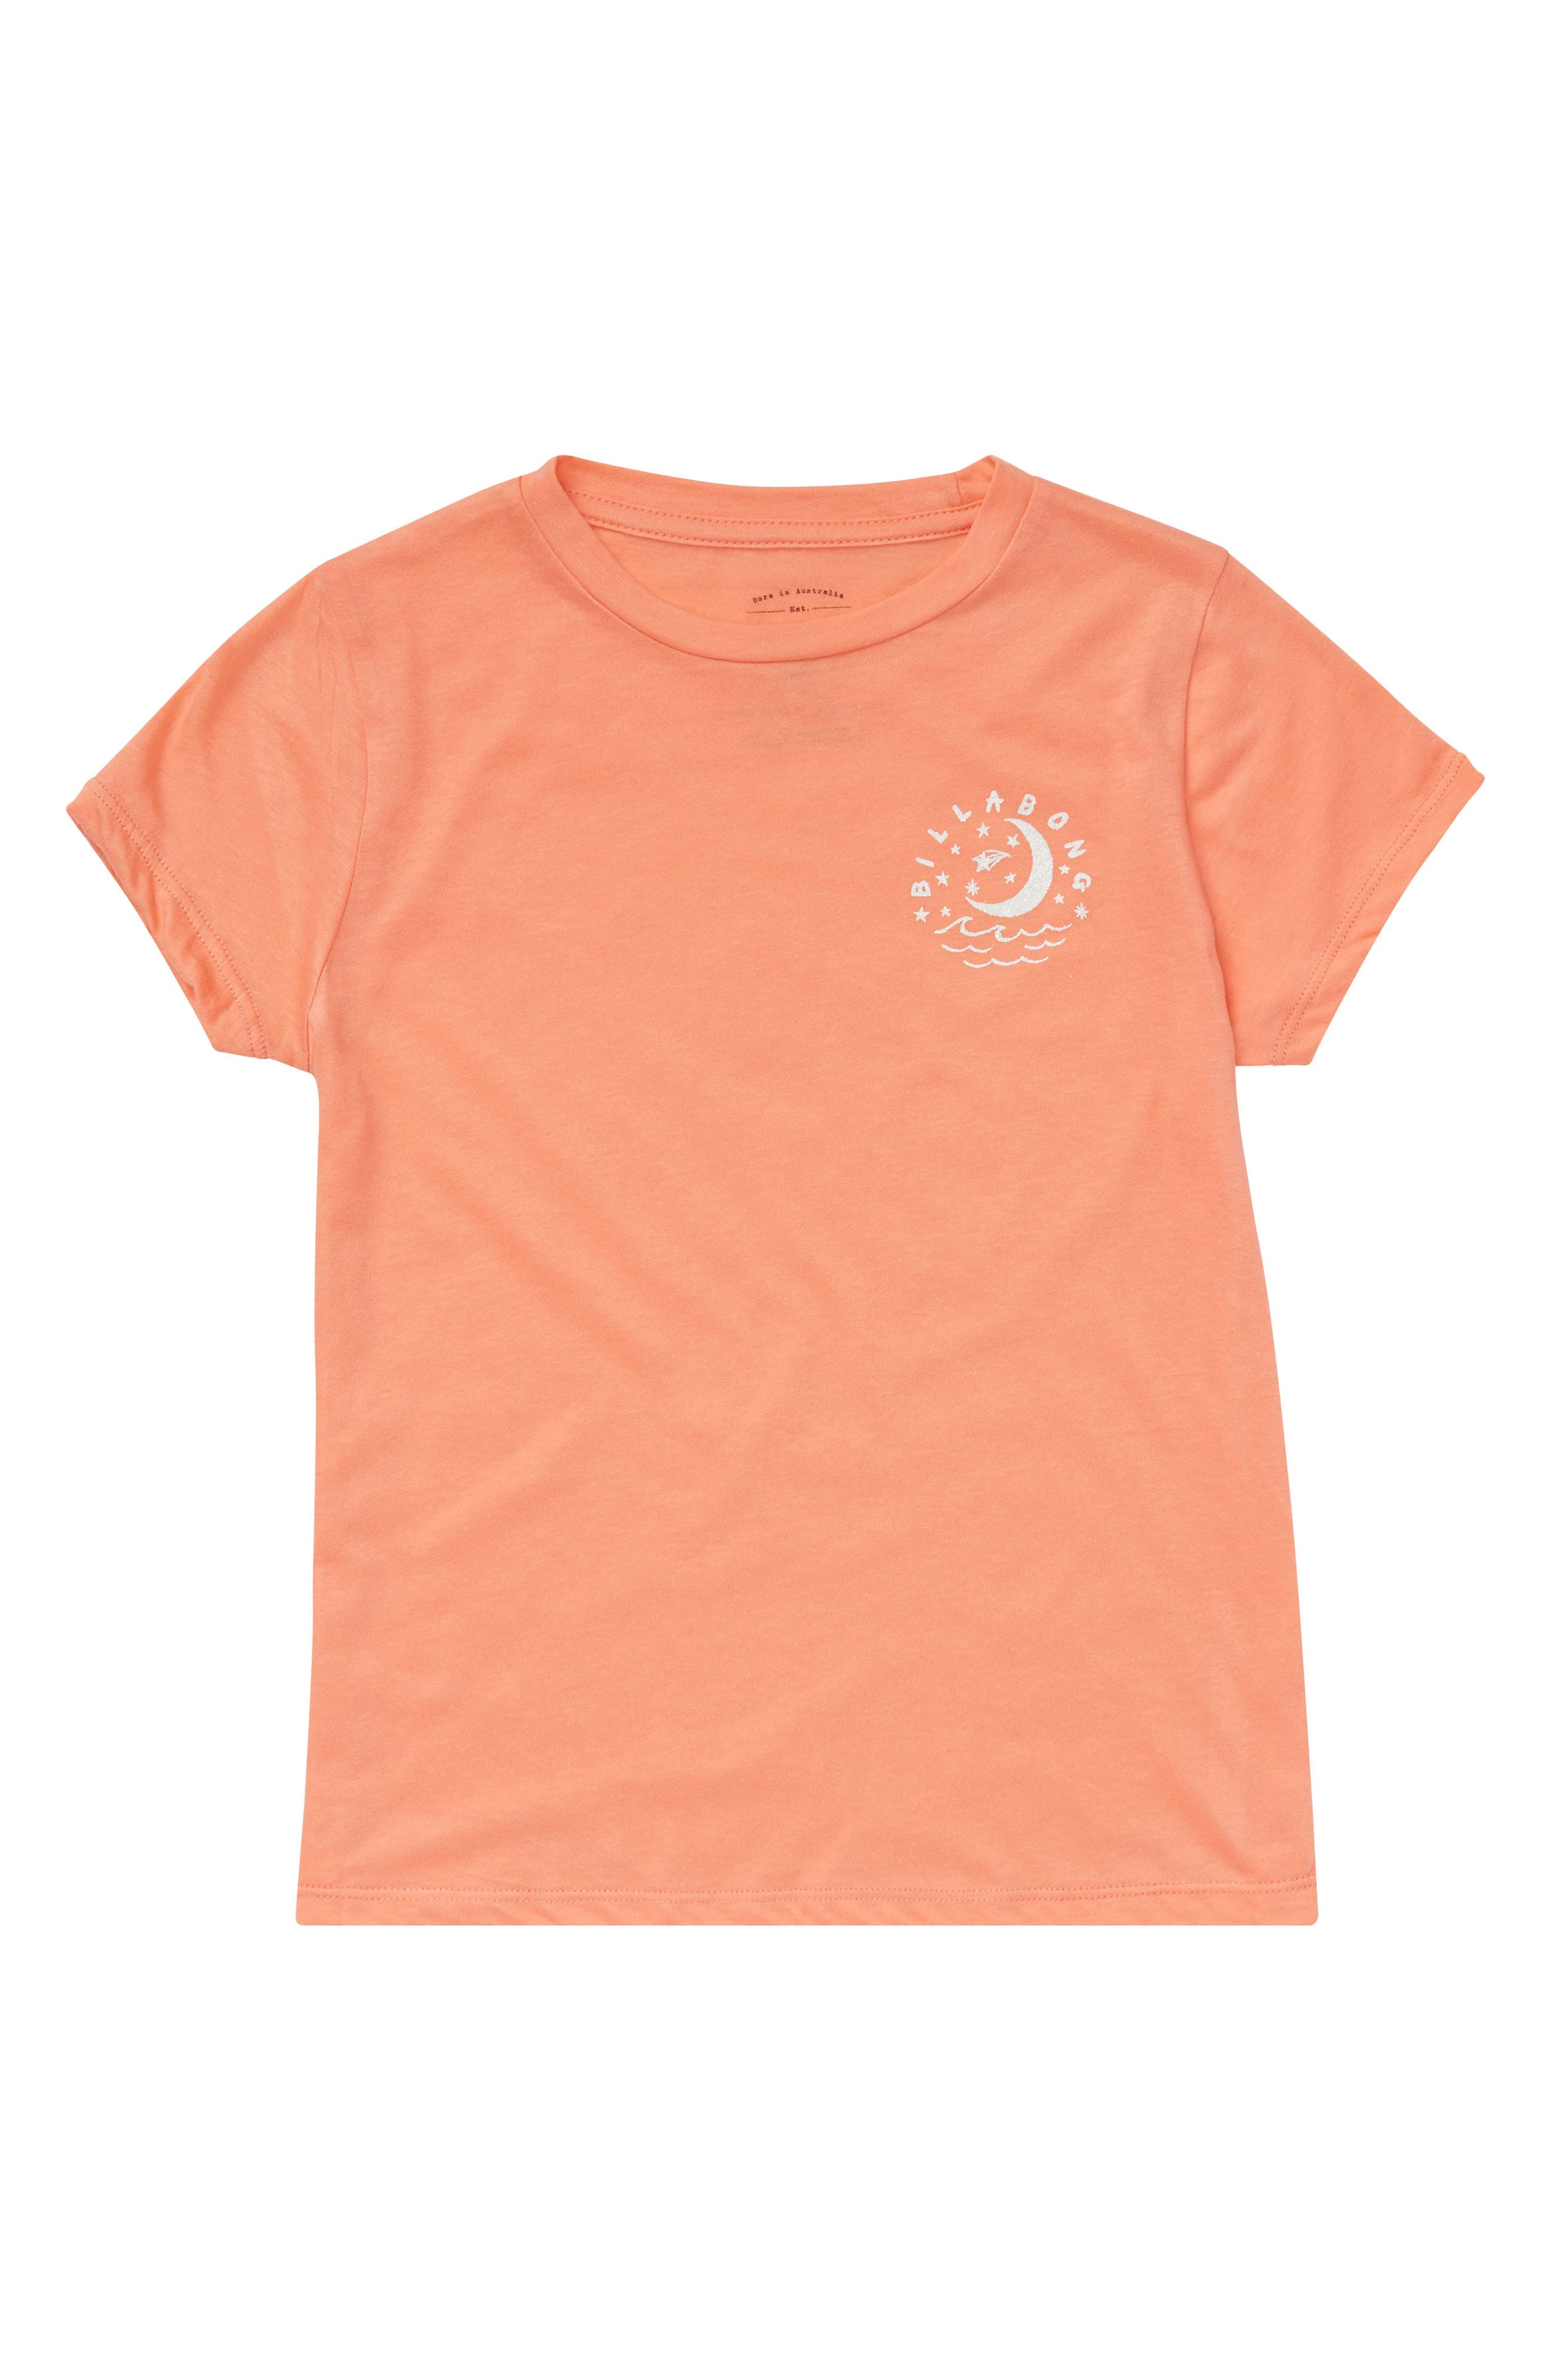 Night Sky Graphic Tee,                             Main thumbnail 1, color,                             Sunkissed Coral